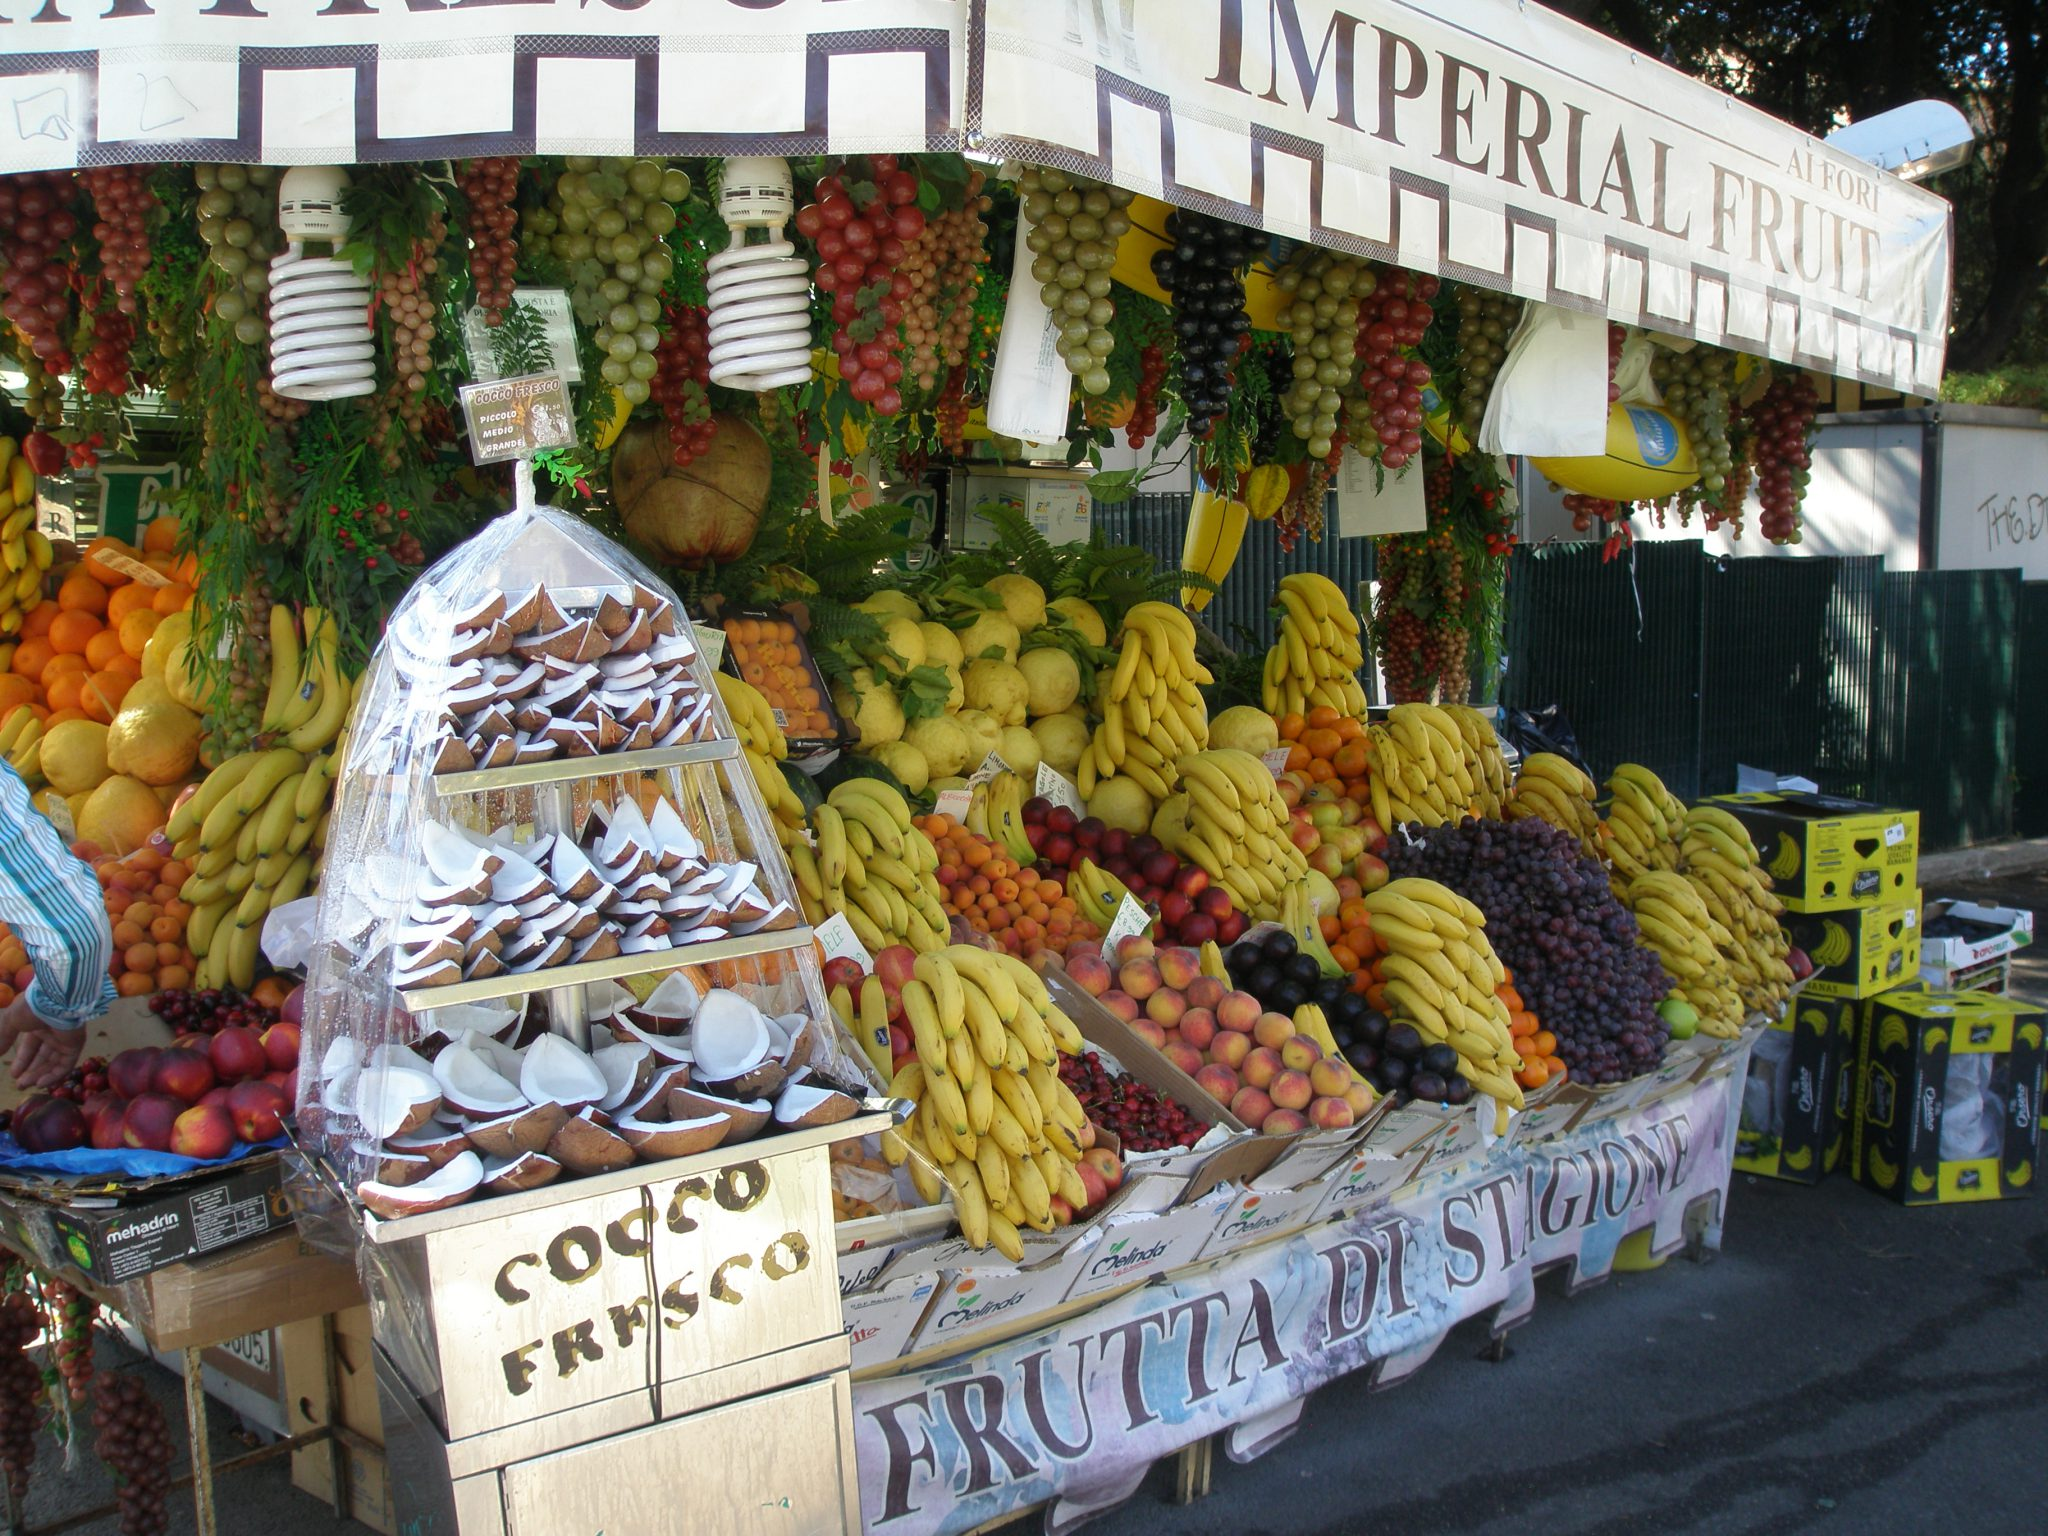 Time for a snack at a fruit stand on Via del Fori Imperiali, which makes it time for a lesson in Fruit-Buying-Etiquette. When choosing fruit in Italy, if you don't know how to tell the proprietor what you want, politely point at the object of your desire. NEVER fondle the merchandise.